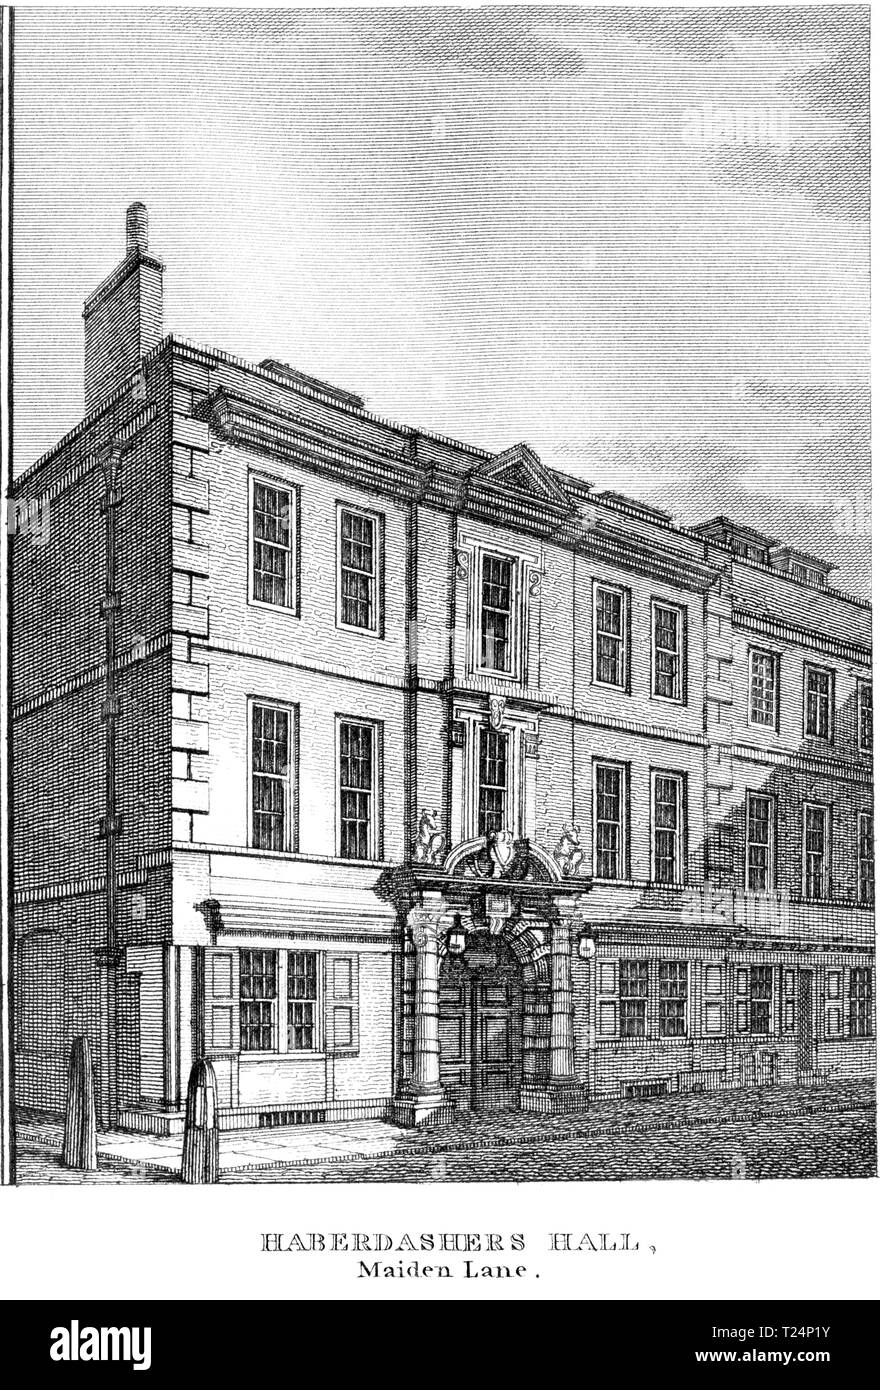 An engraving of Haberdashers Hall, Maiden Lane, London UK scanned at high resolution from a book published in 1814. Believed copyright free. - Stock Image